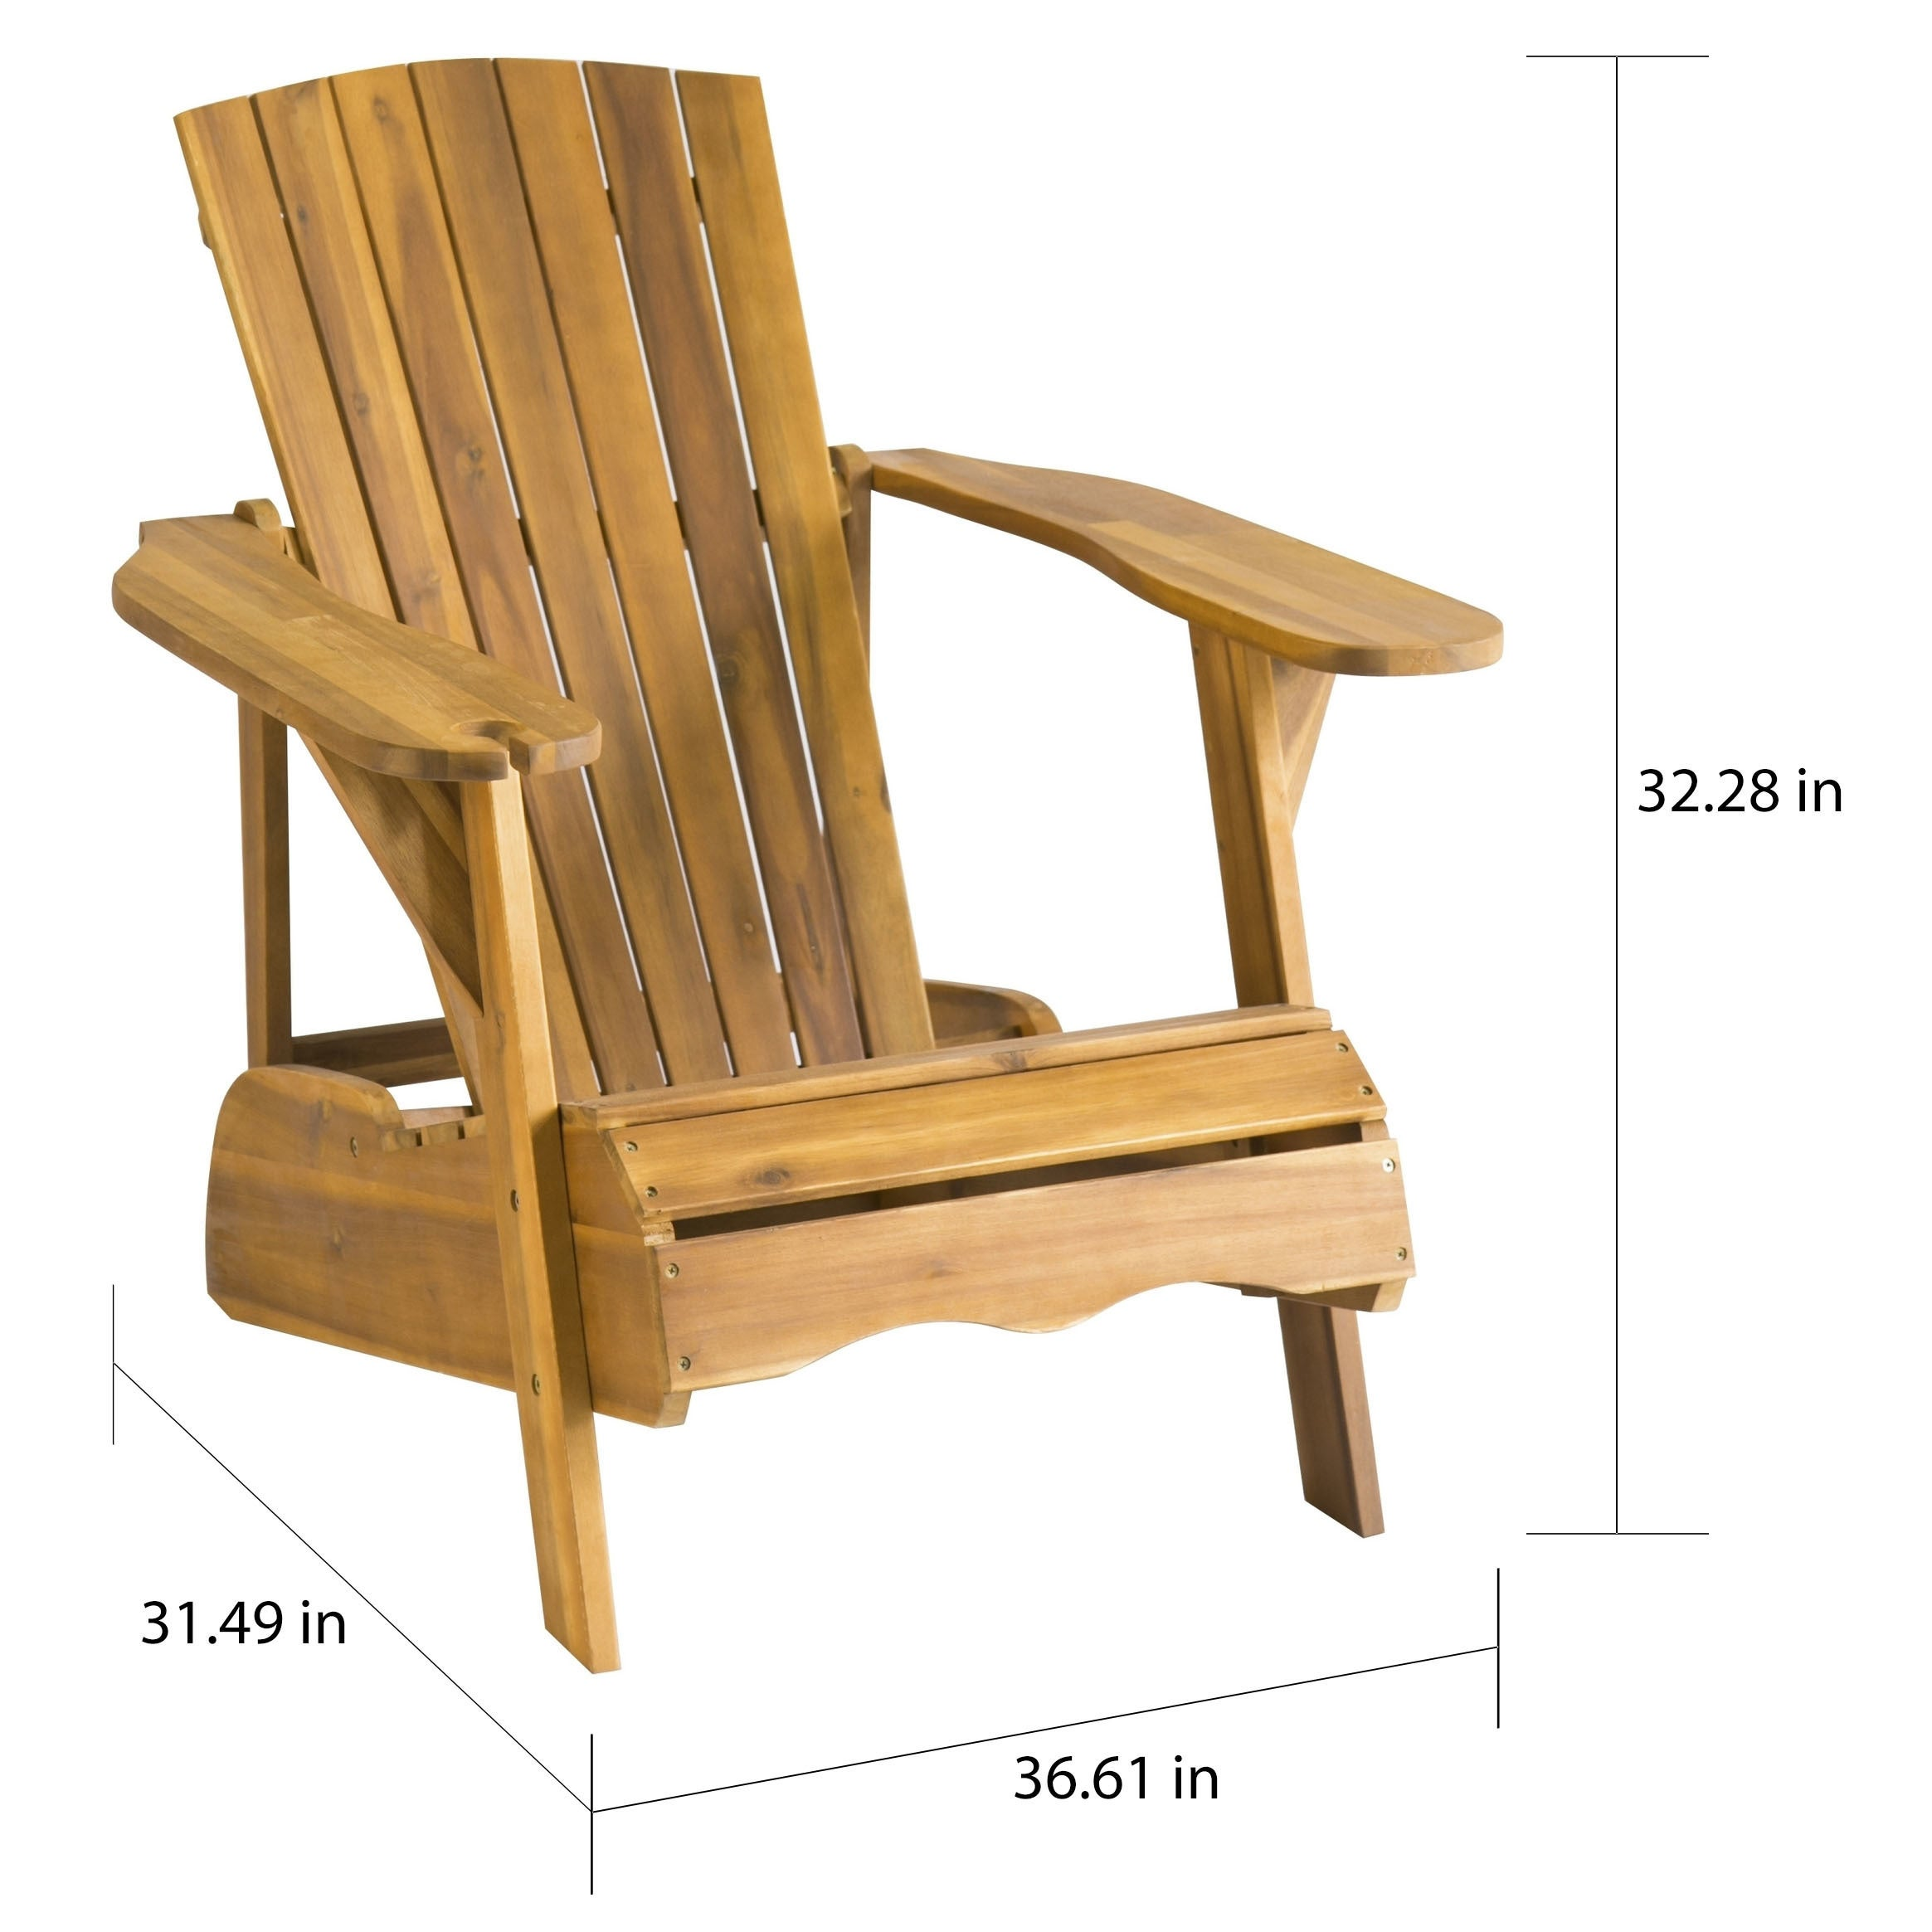 com chairs outdoor kotulas living classic finish deals furniture chair teak adirondack linon wood